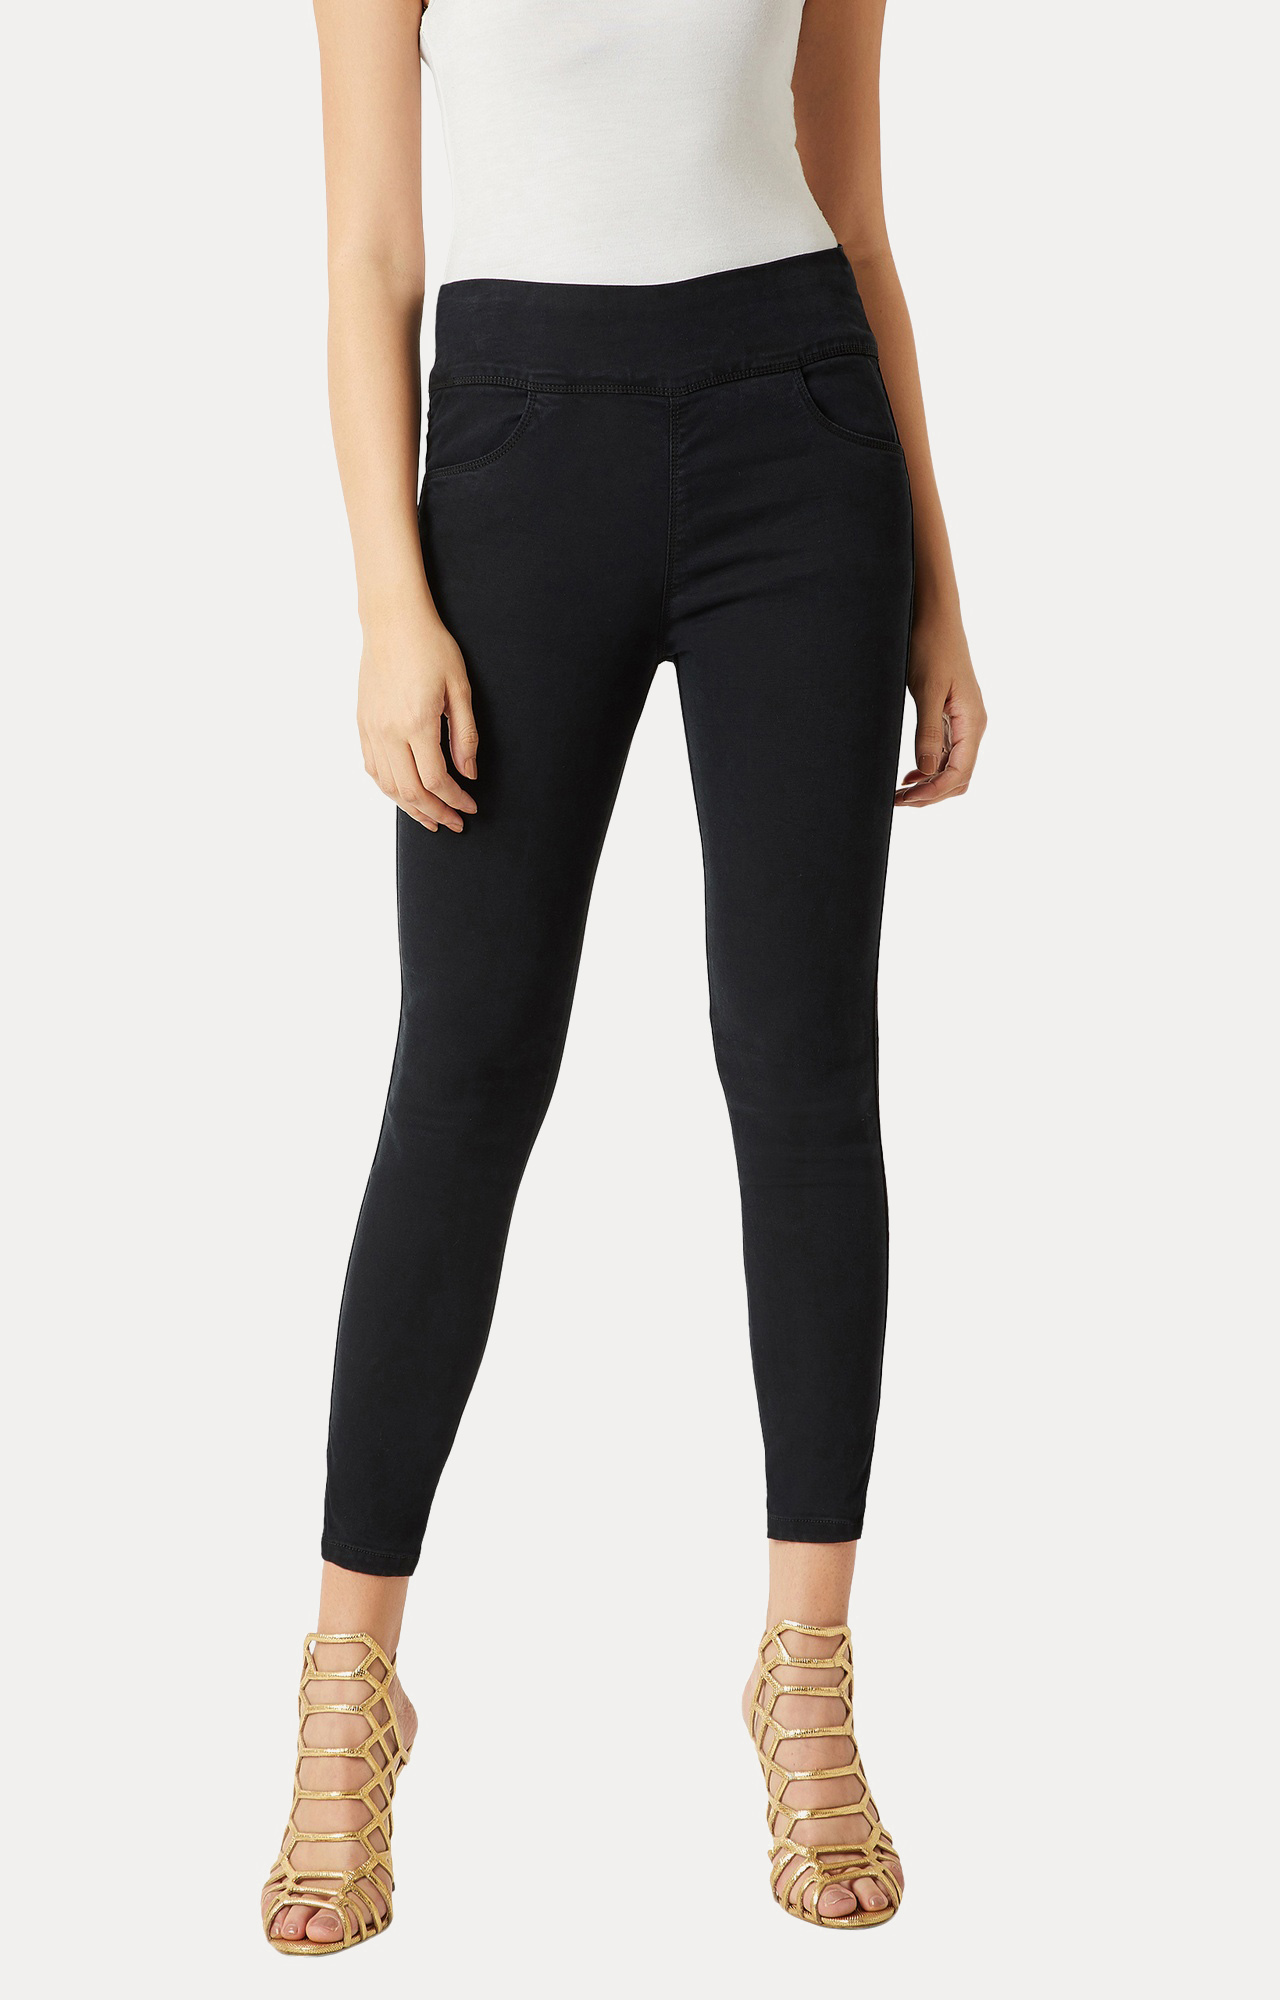 MISS CHASE   Black Clean Look Stretchable Jeggings